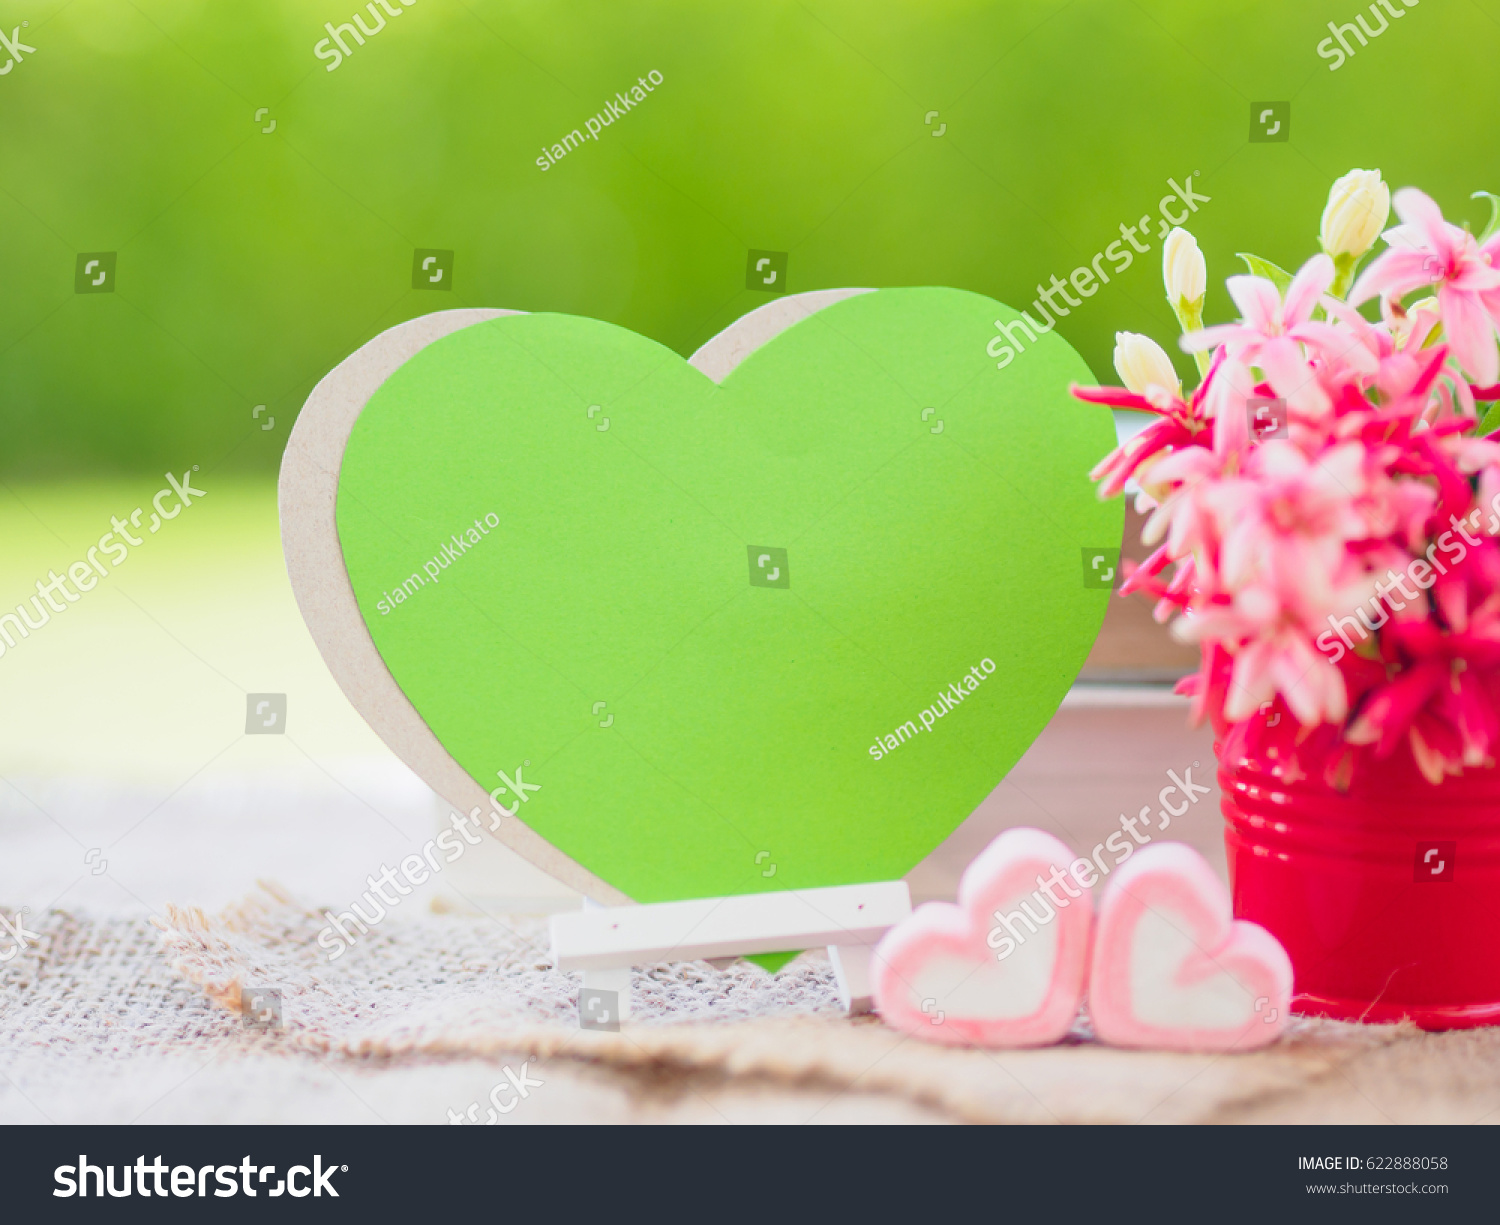 Poster Mock Template Flower Bouquet Marshmallow Stock Photo (Safe to ...